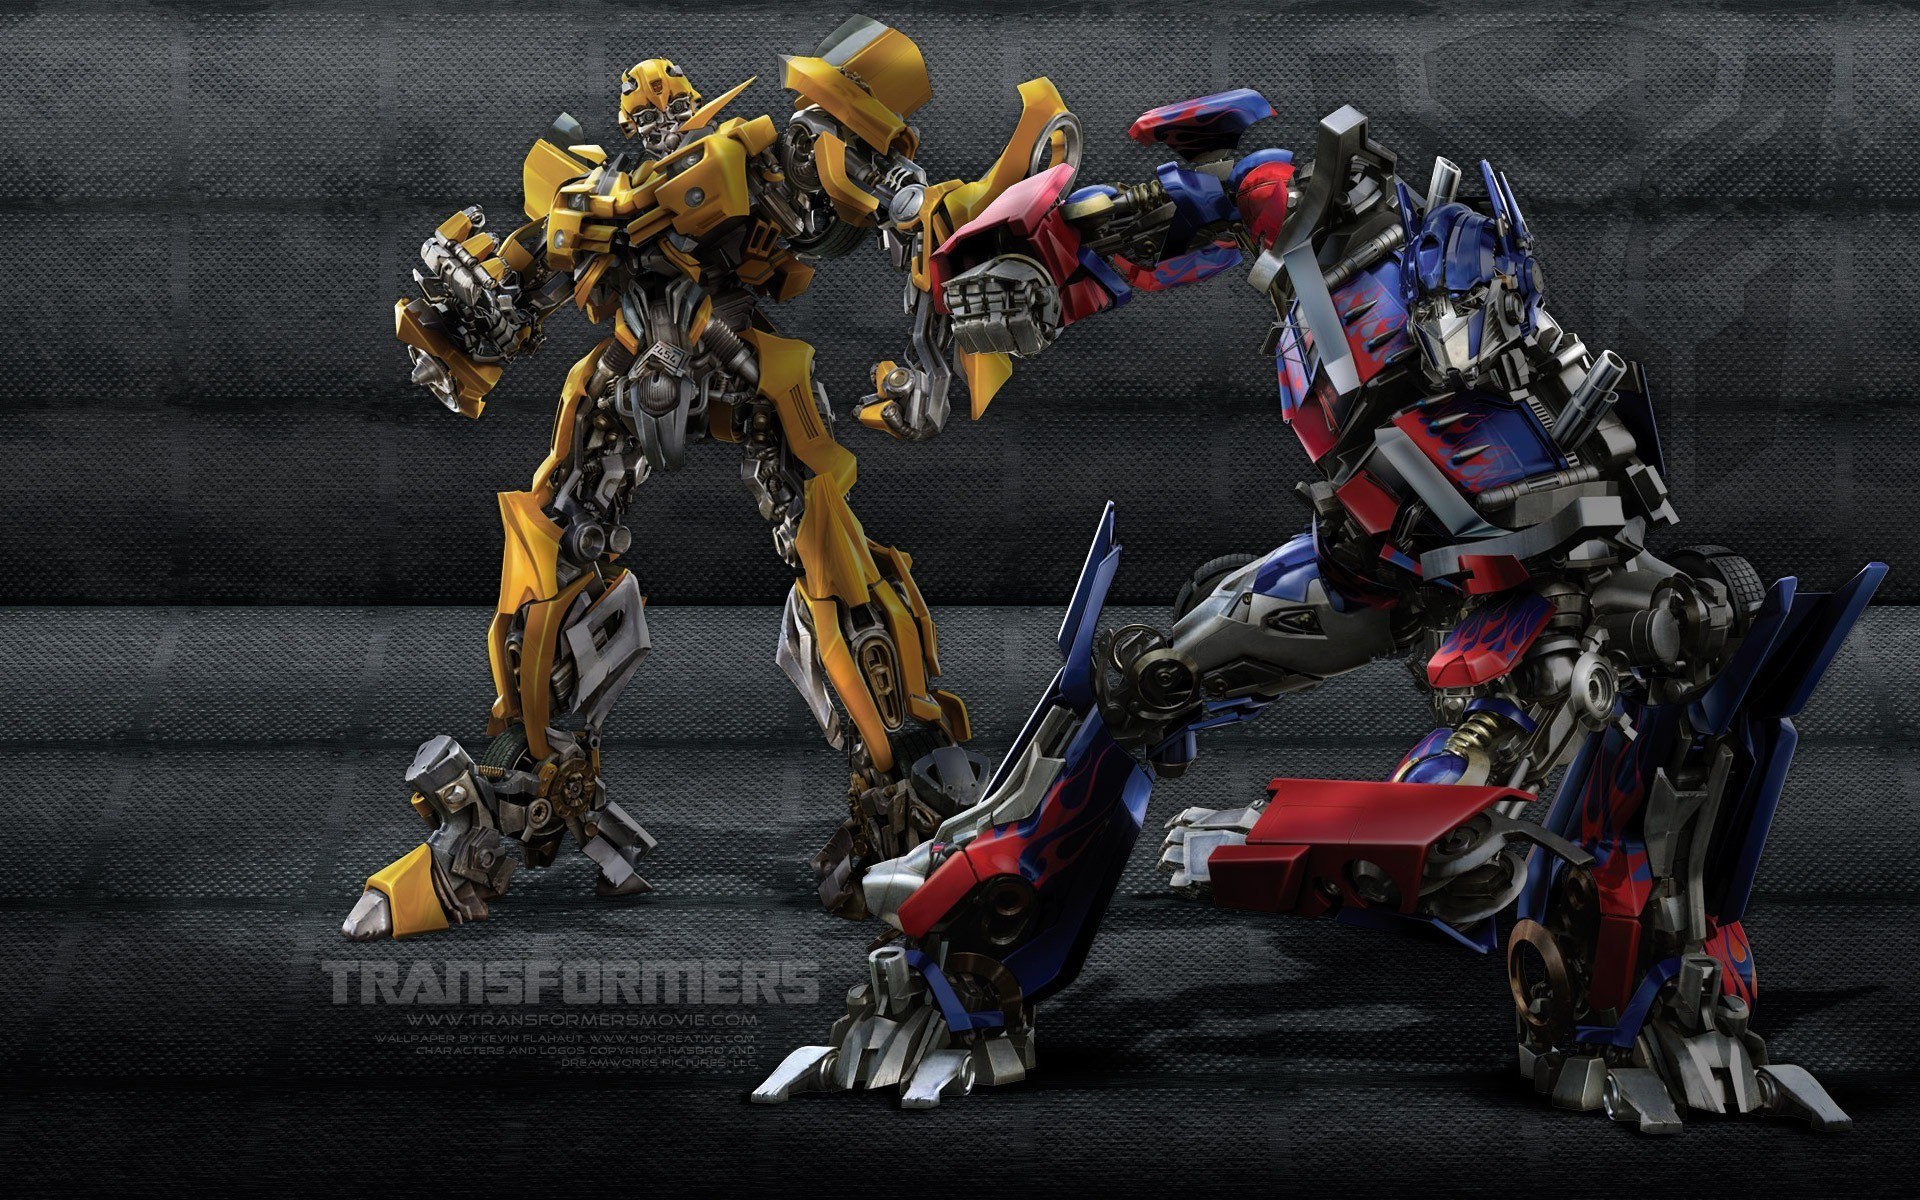 1920x1200 Bumblebee Optimus Wallpaper Transformers Movies Wallpapers